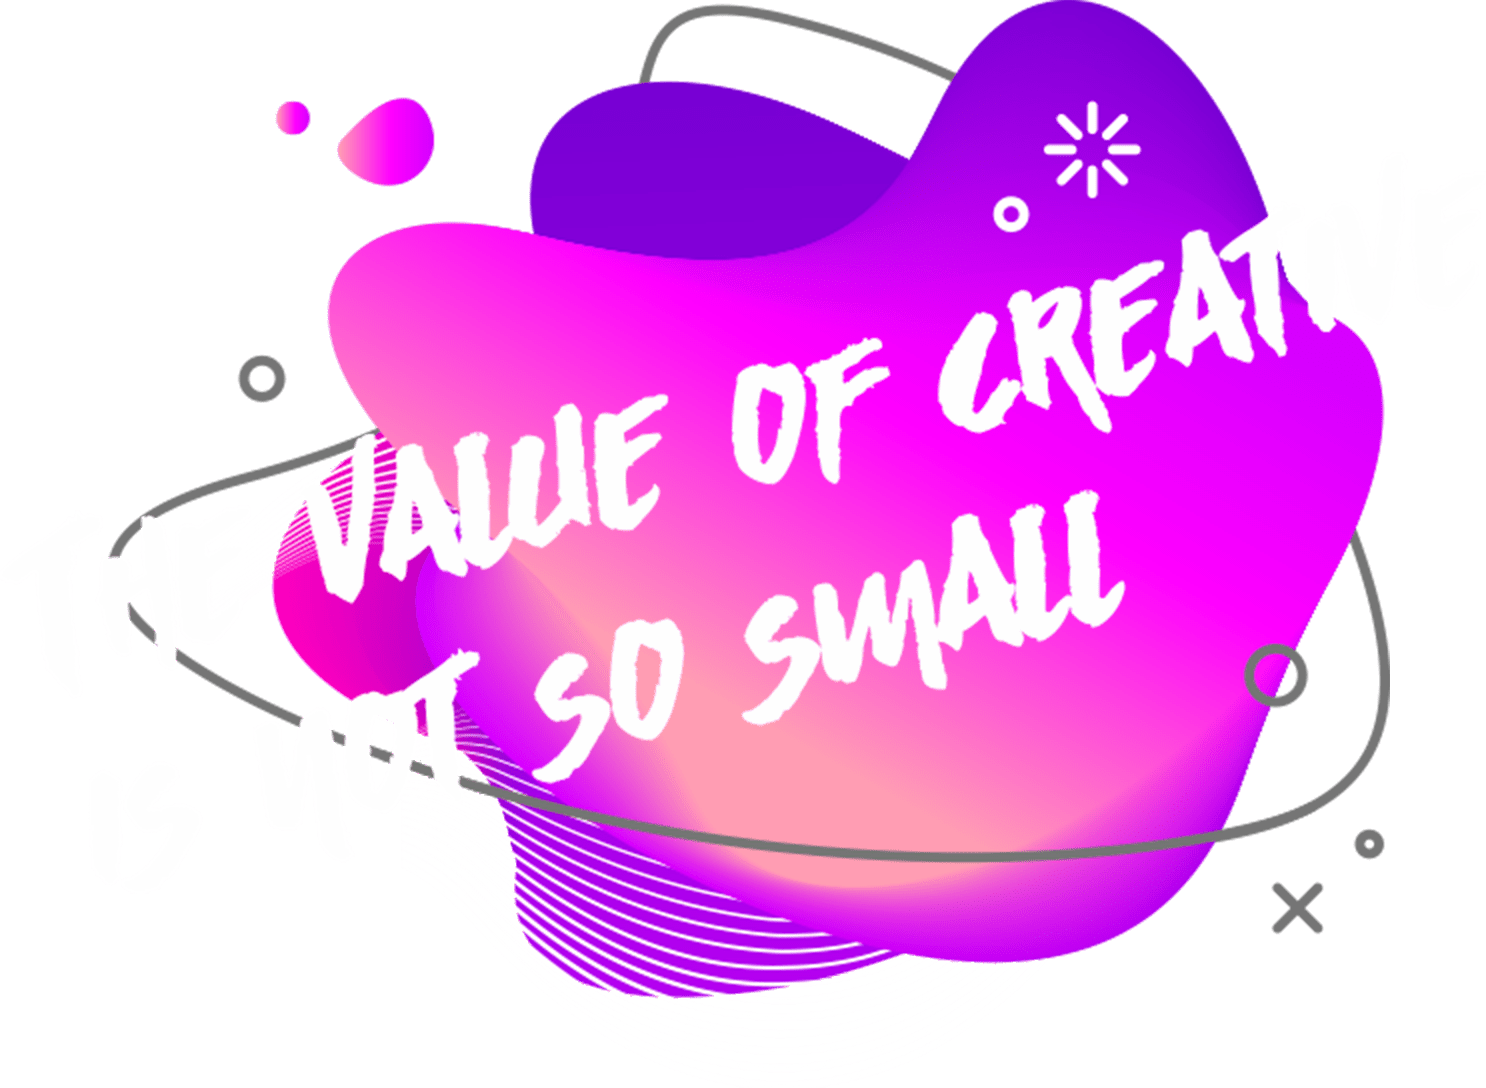 The value of creative is not so small